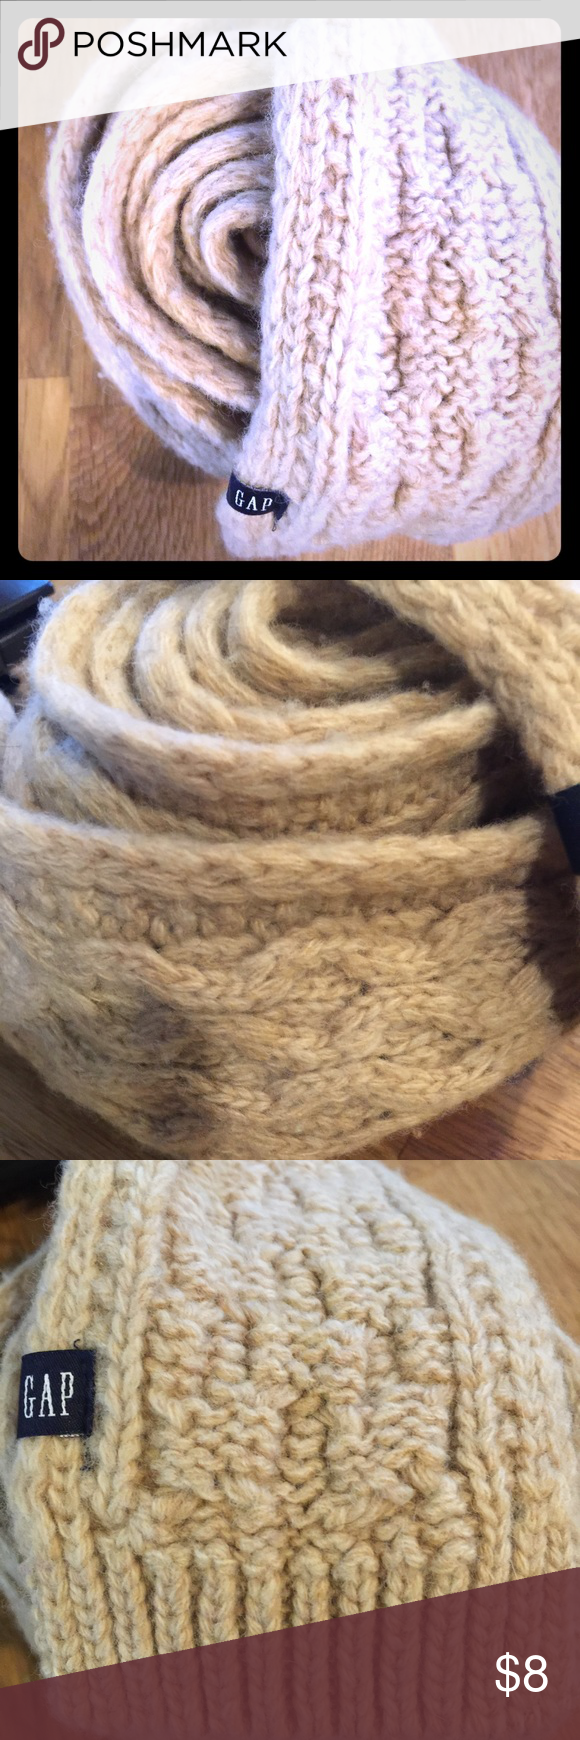 🎉FREE w/any Boutique purchase!🎉Gap Skinny Scarf Beige Gap skinny scarf. Gently worn. Cute for fall with leggings or jeans! GAP Accessories Scarves & Wraps